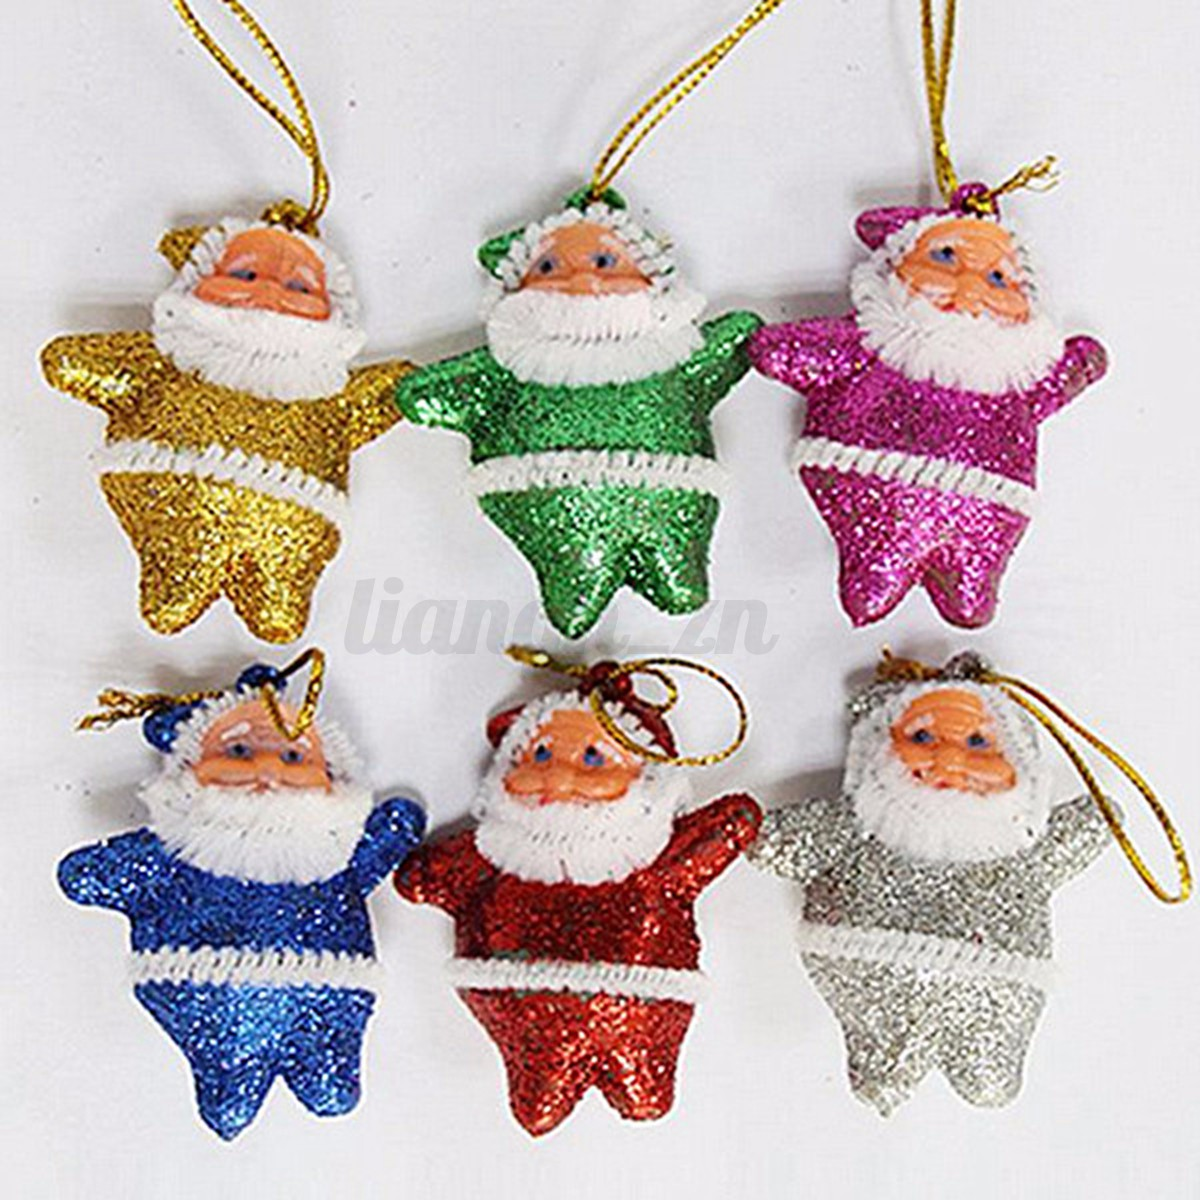 6-12pcs-Canne-Noel-Fleur-Suspendu-Boule-Neige-Pendente-Ornement-Decor-Sapin-Fete